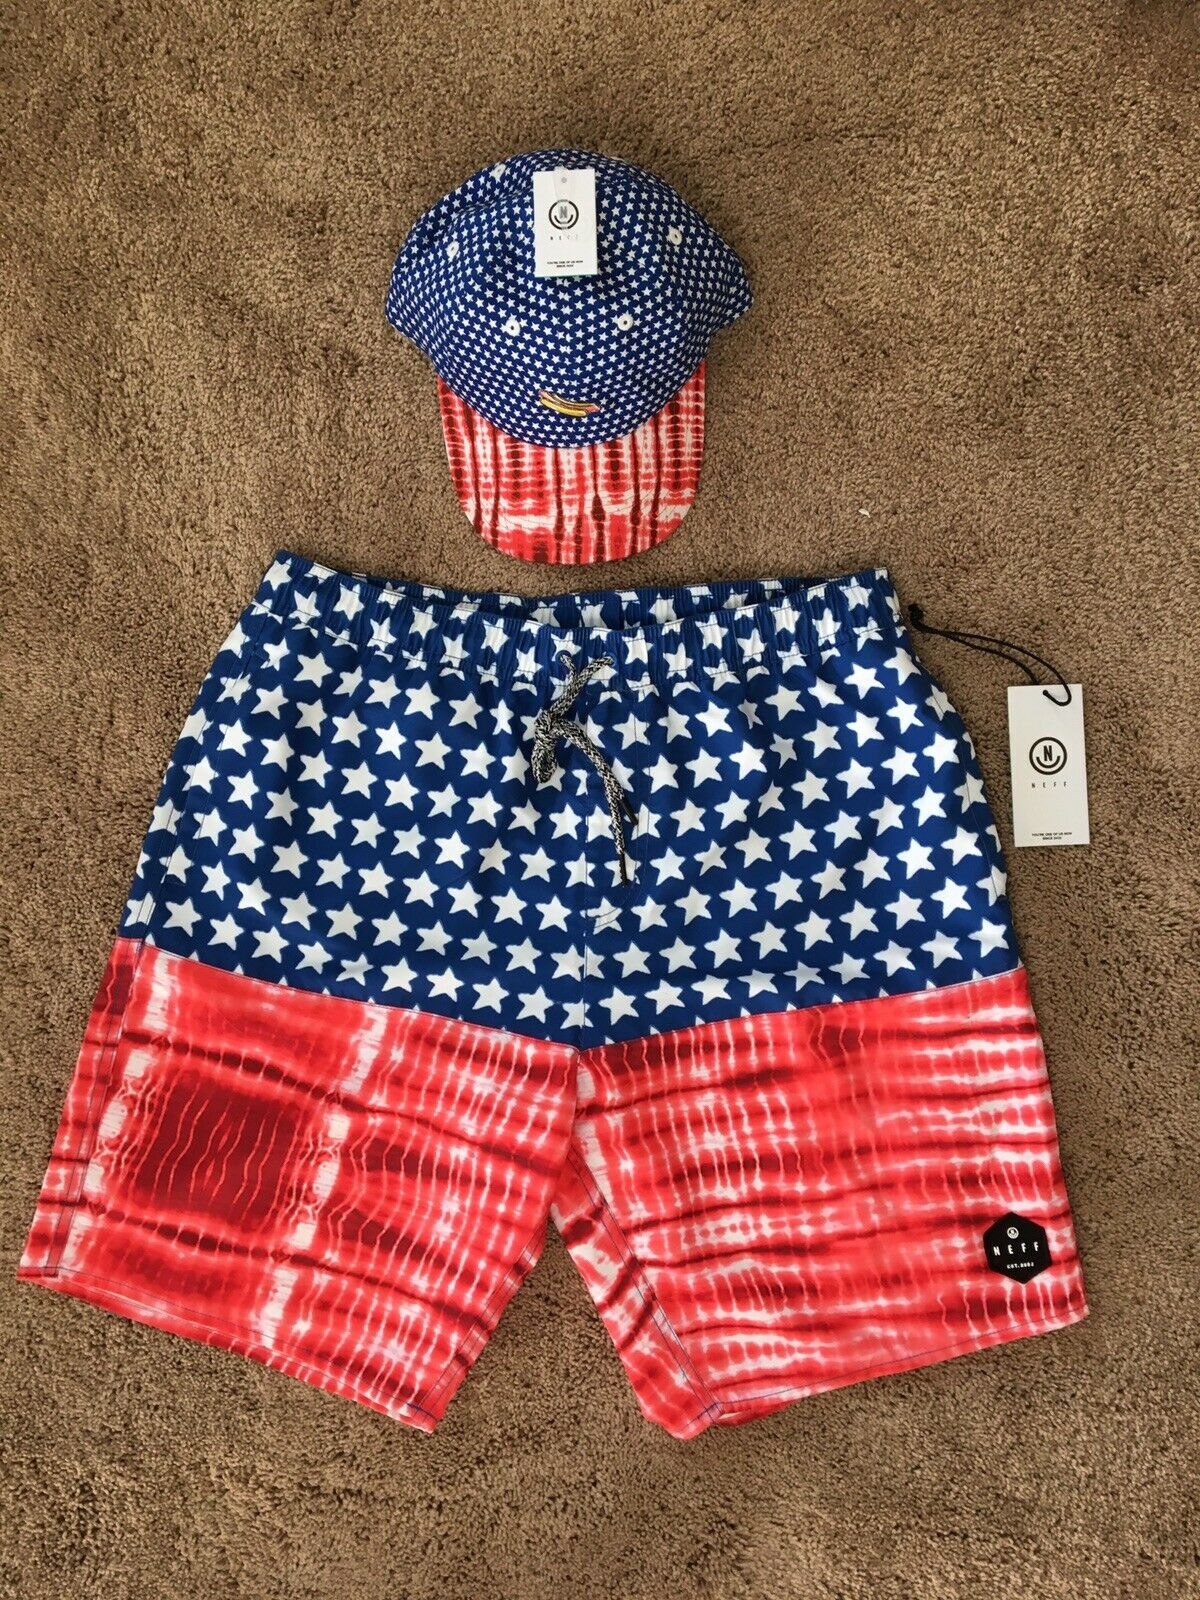 Neff 4th Of July Hot Swim Trunks Shorts USA & Hat COMBO Brand New W  Tags - MED